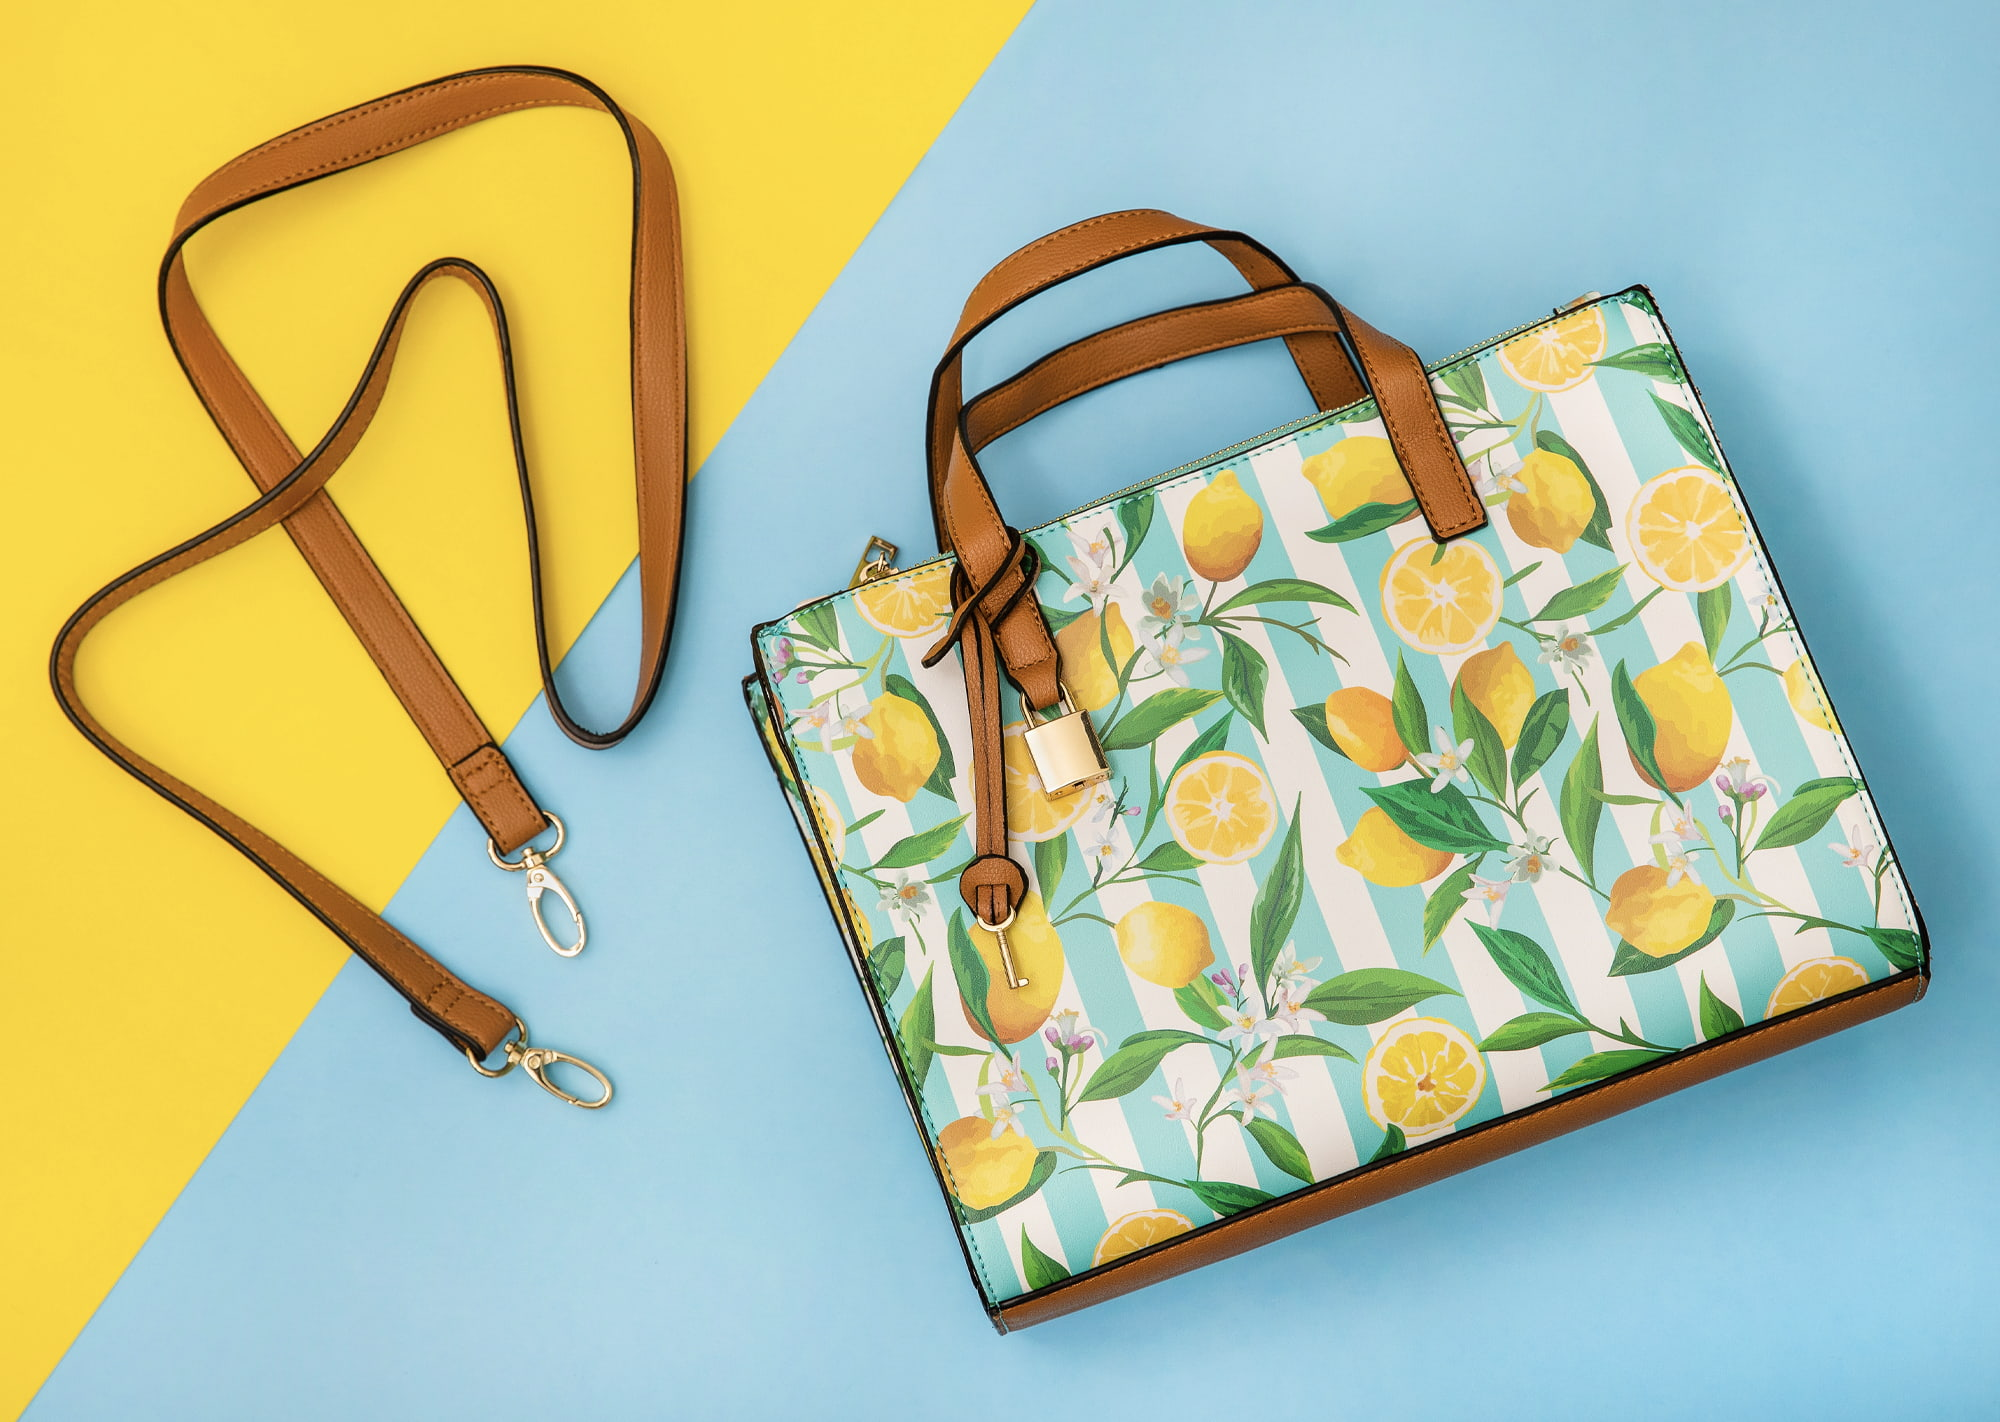 flat lay of lemon purse on yellow and blue background